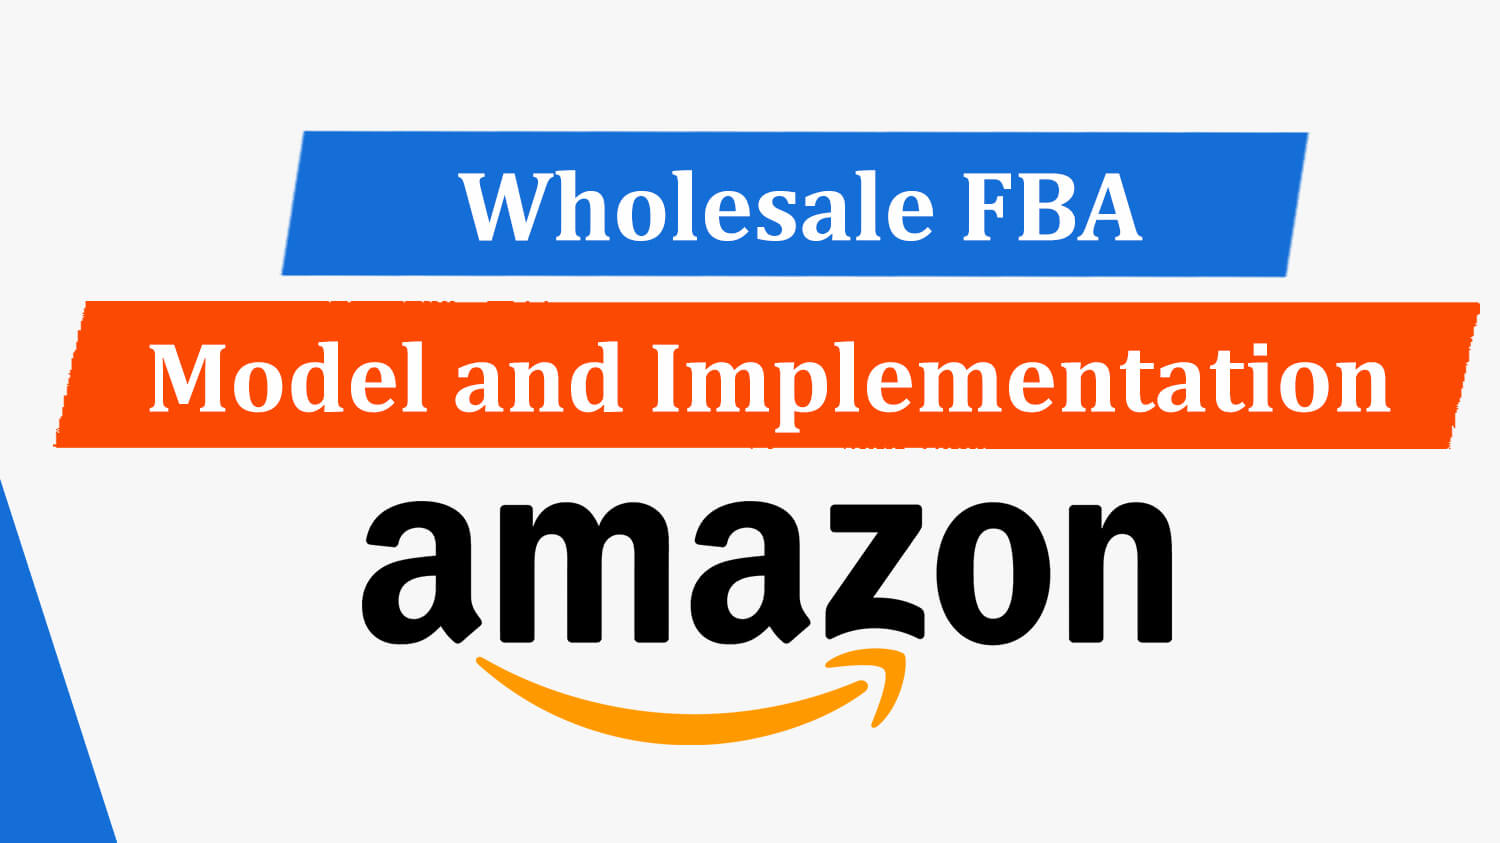 Wholesale FBA Model and Implementation